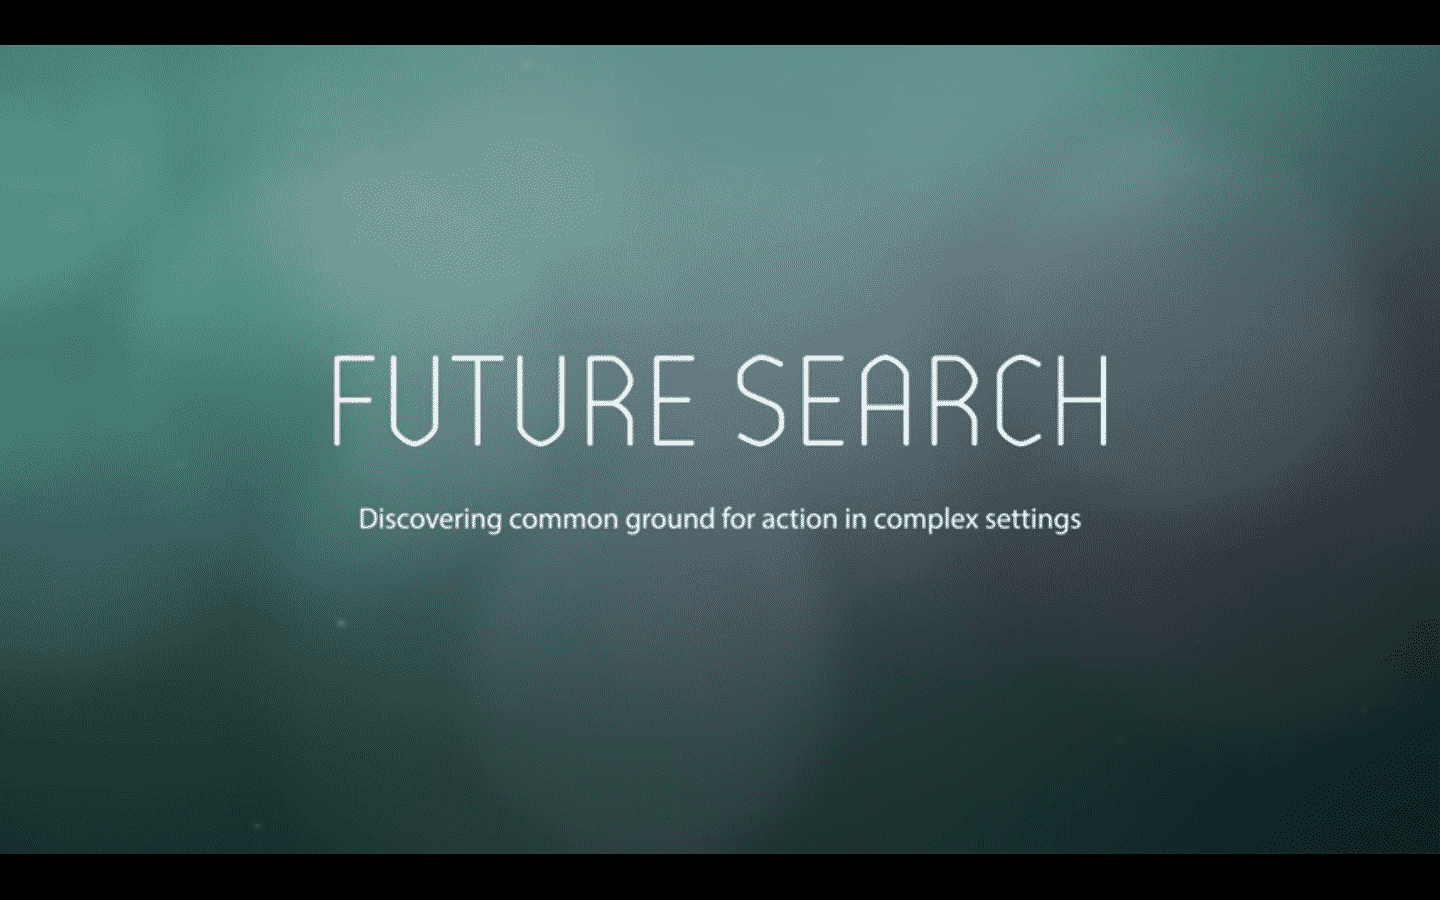 Future Search Philosophy